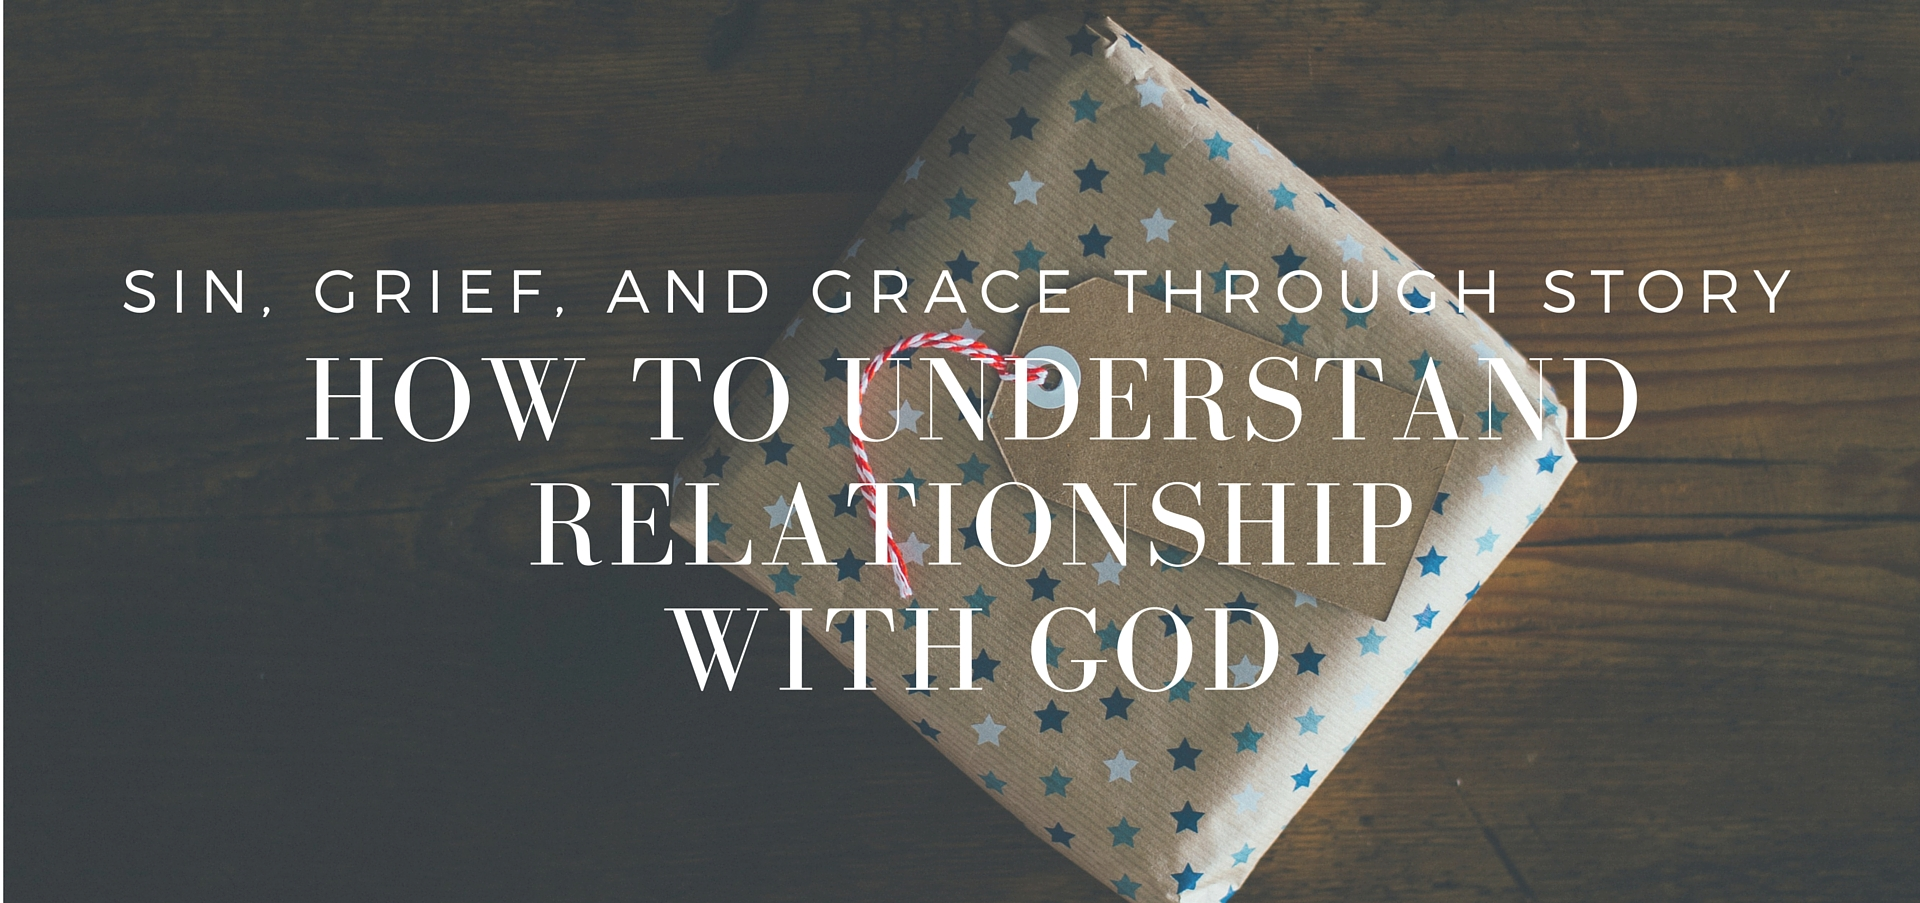 How to Understand Relationship with God - read on human-divine relationship on KateRaeDavis.com